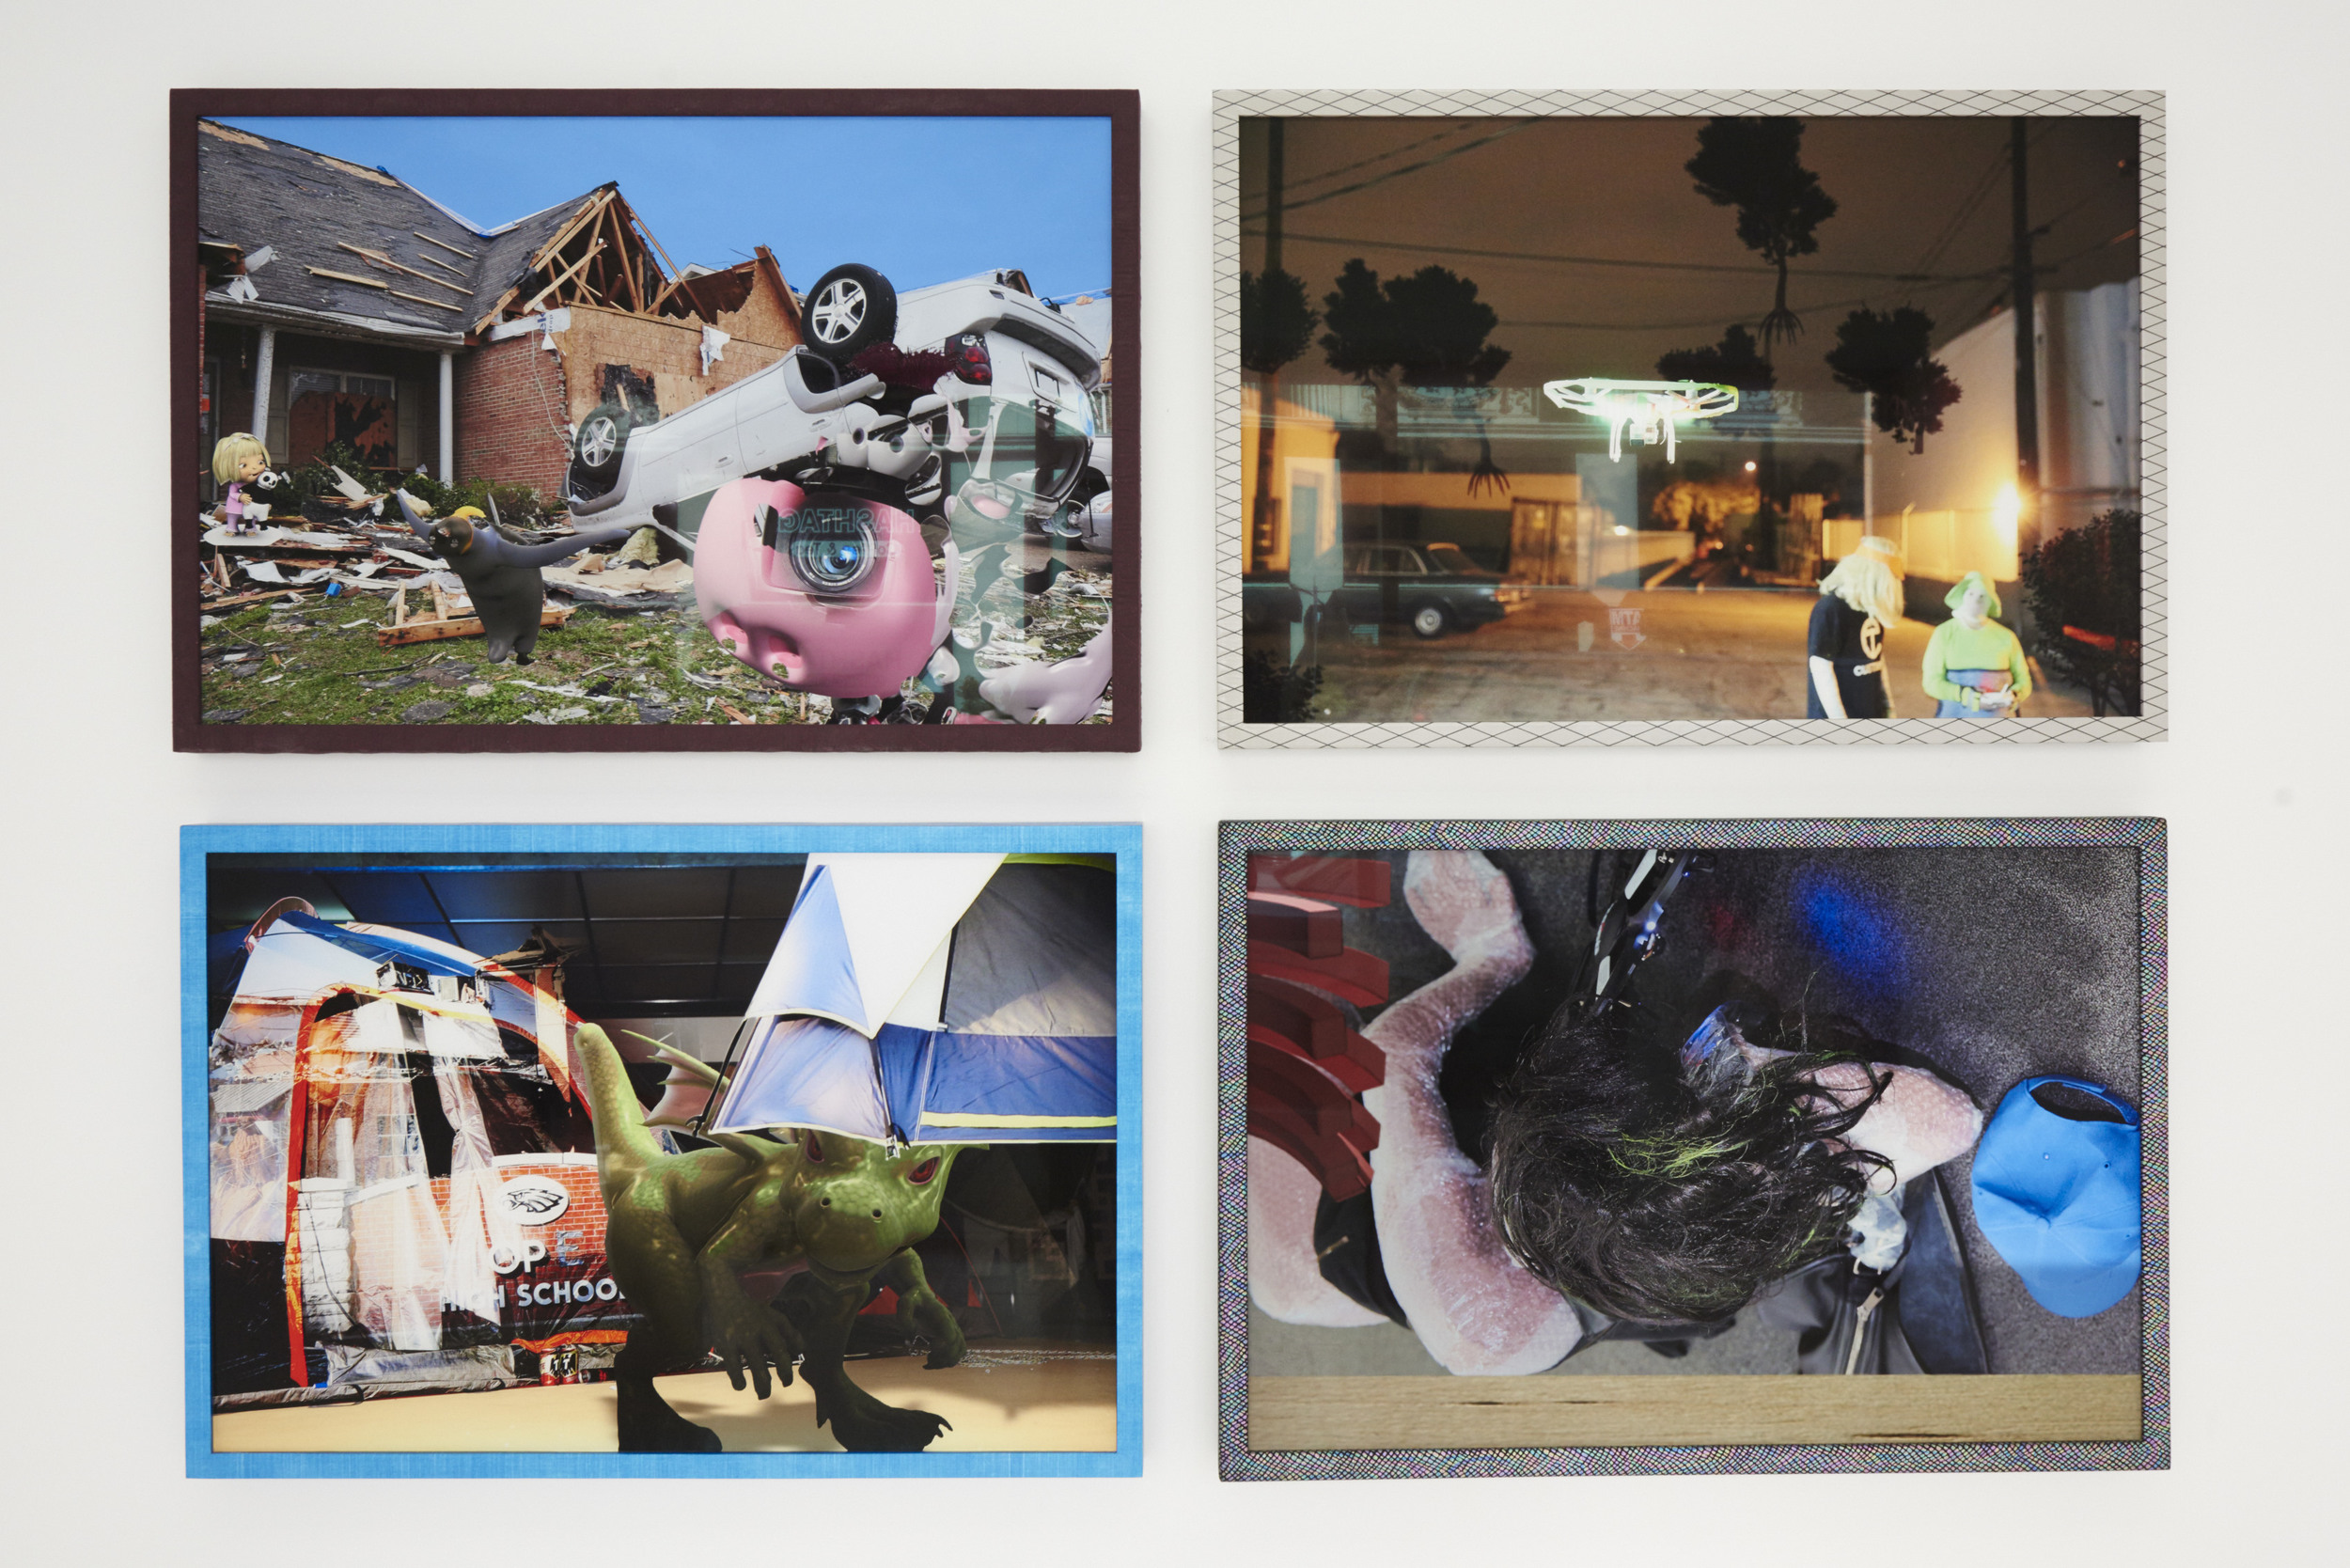 Ryan Trecartin  Empathy Camp & Refugee Petting Zoo , 2015 Digital prints, hand wrapped custom frames, quilted fabric, tent x-pac laminated ripstop, 1.43 oz cuben fiber, neoprene, glue, wood, non-glare plexiglass, aluminum backing Overall Dimensions: 53 1/2 x 77 1/4 x 1 3/4 in Edition 3 of 6 + 2AP